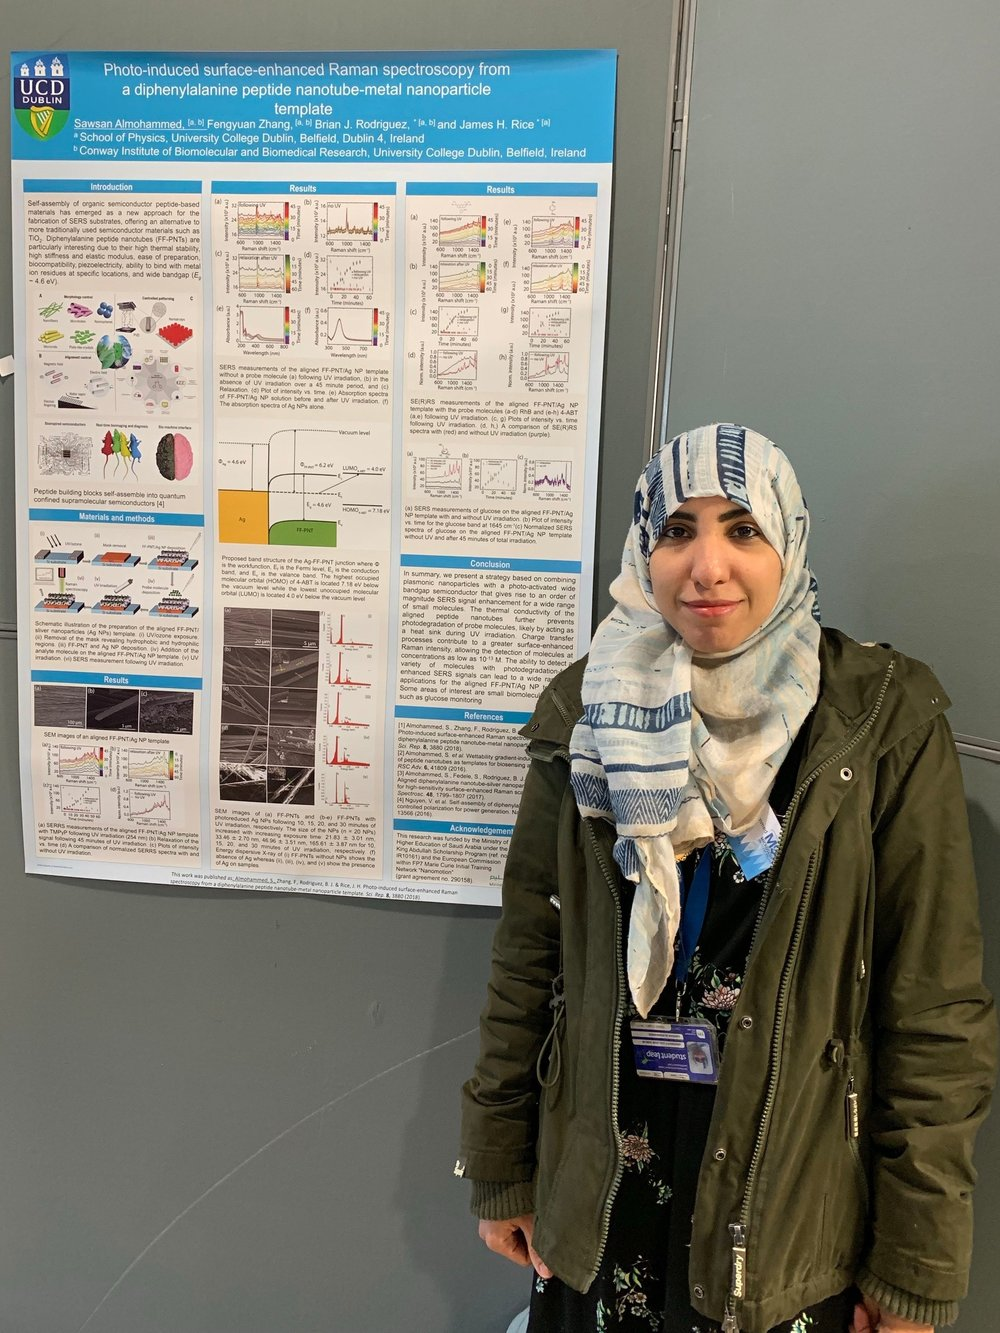 Sawsan at her poster